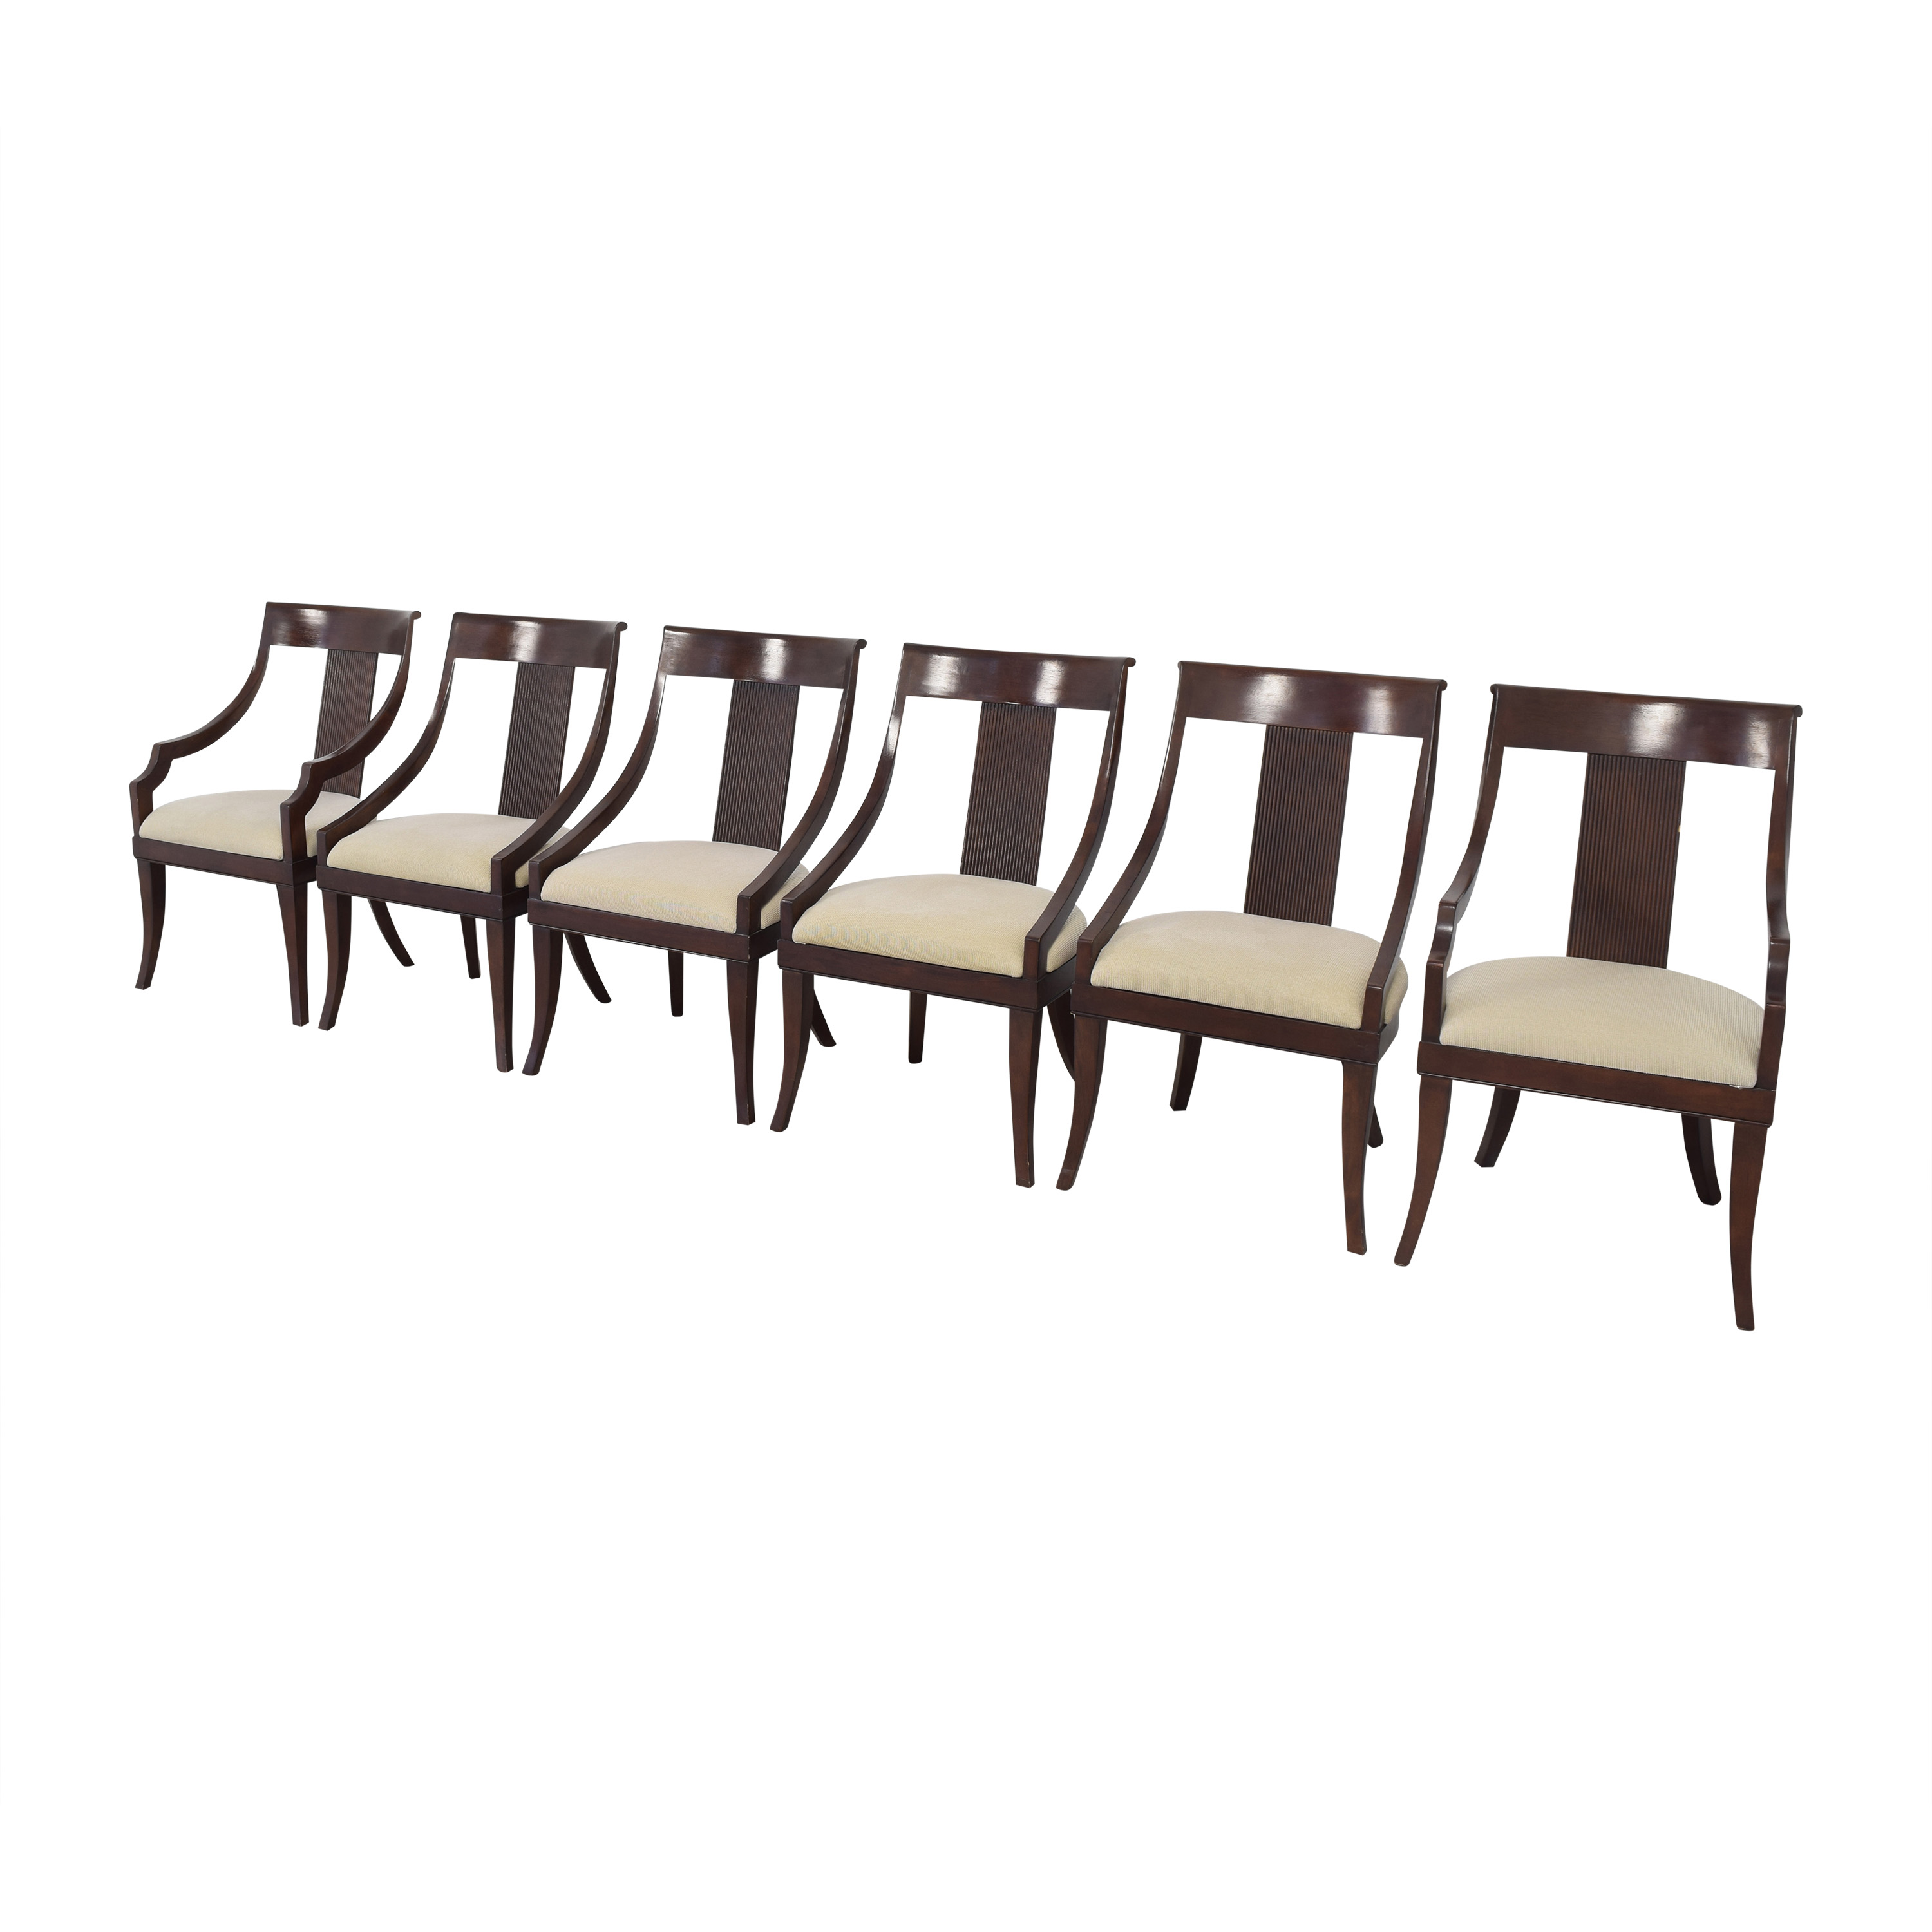 shop Macy's Upholstered Dining Chairs Macy's